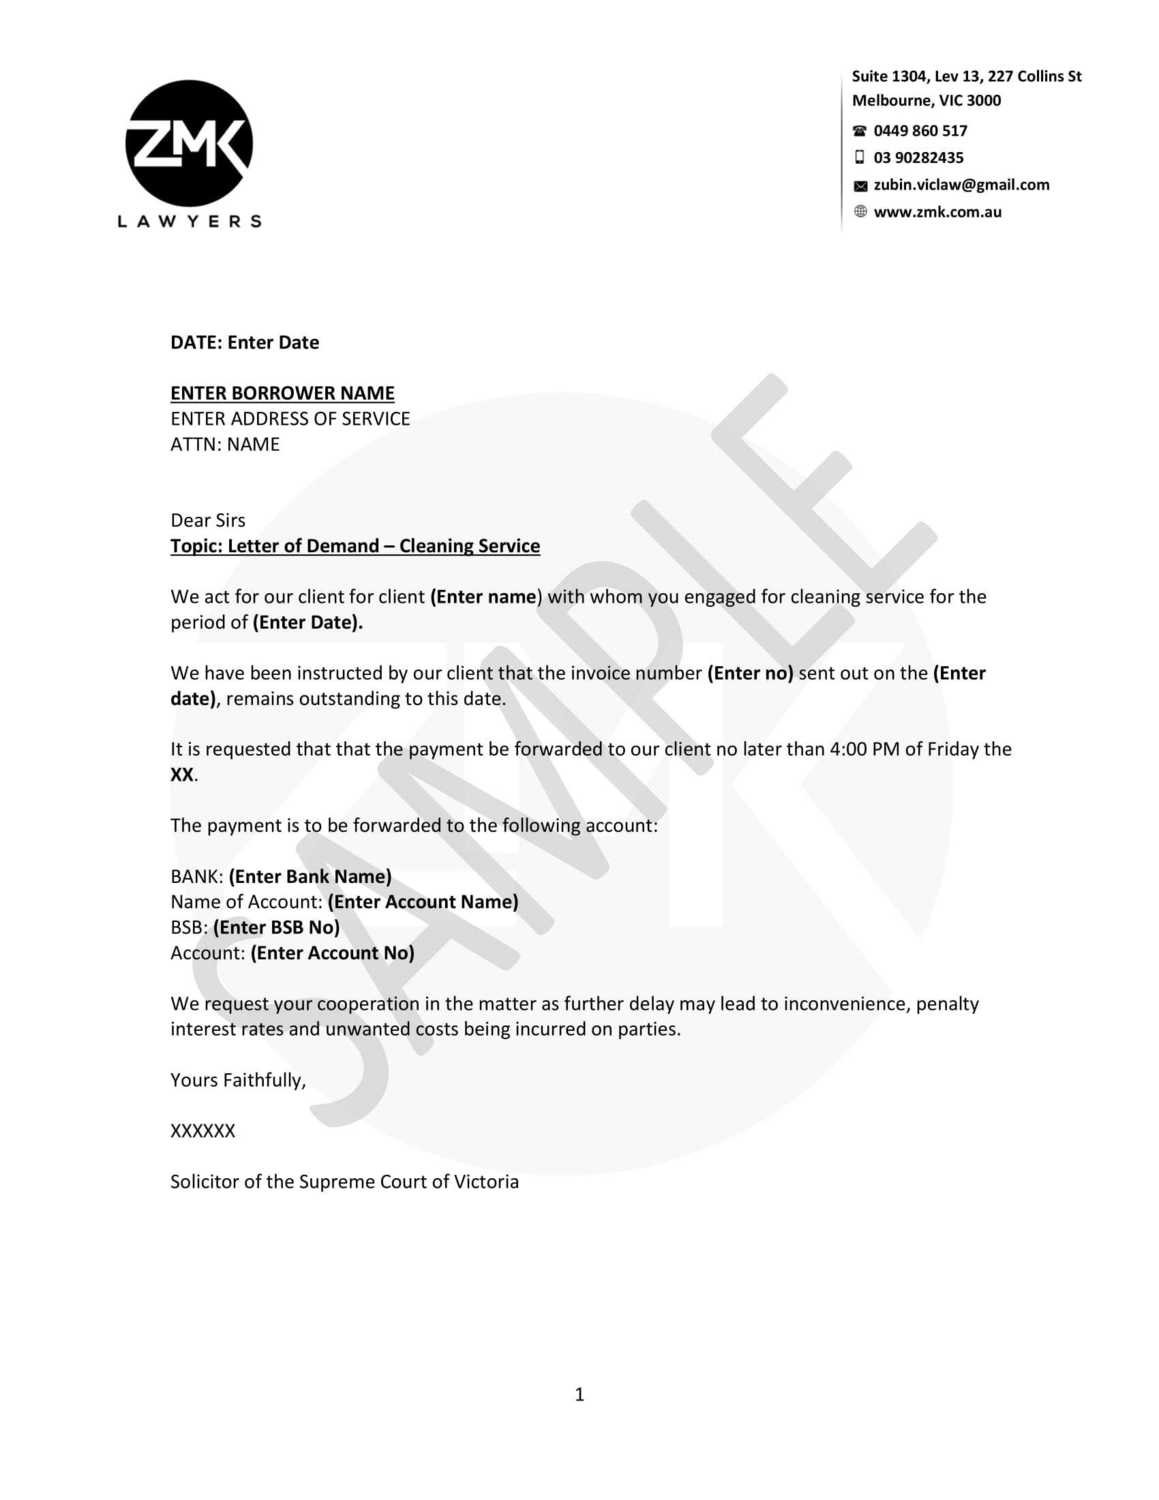 Letter of Demand - Unpaid Cleaning Services